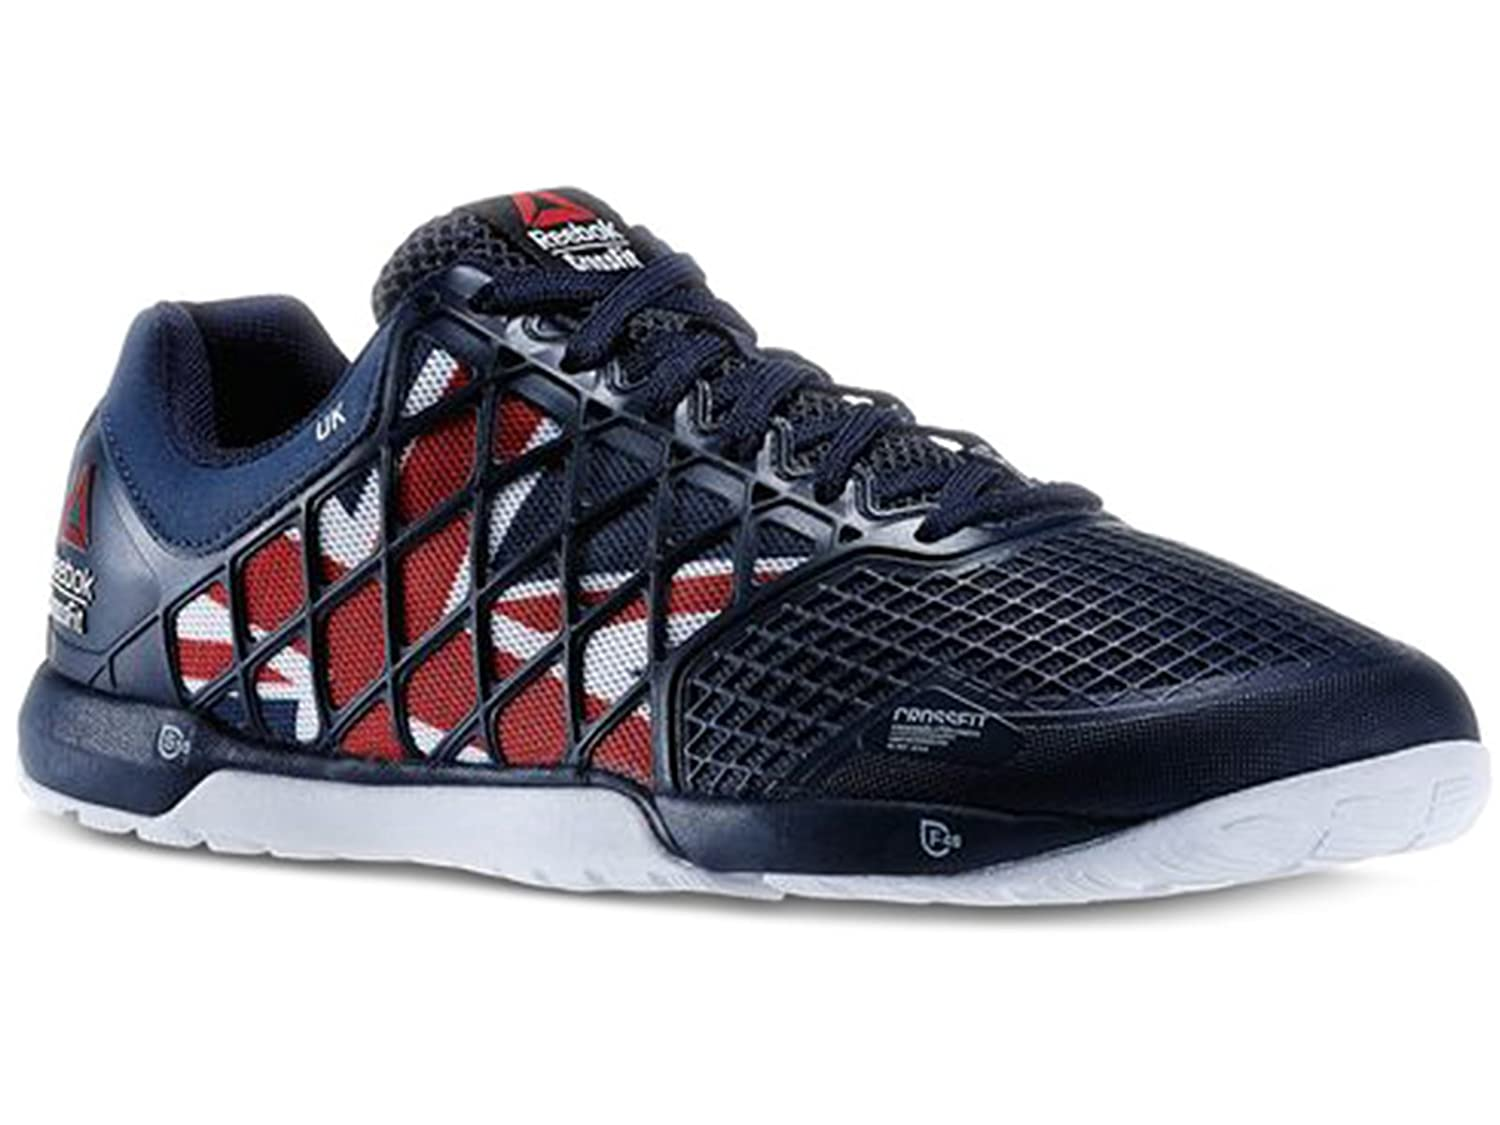 44efb3c3d Amazon.com | Men's Reebok Crossfit Nano 4.0 UK Flagpax Shoes Navy/Excellent  Red/White/Black M48449 Size 10 | Track & Field & Cross Country